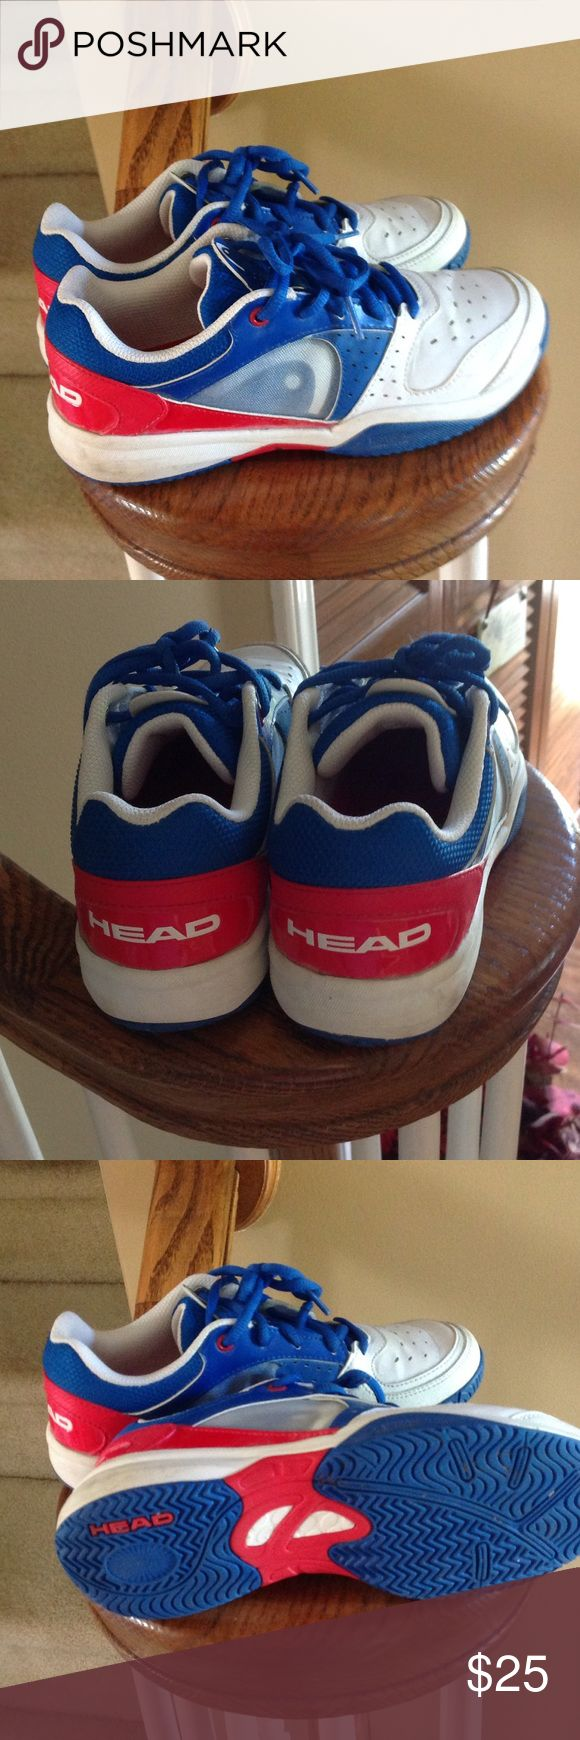 Head Tennis Shoes......for tennis 4.5 Head Tennis shoes......only worn a couple times......great condition! Head Shoes Sneakers